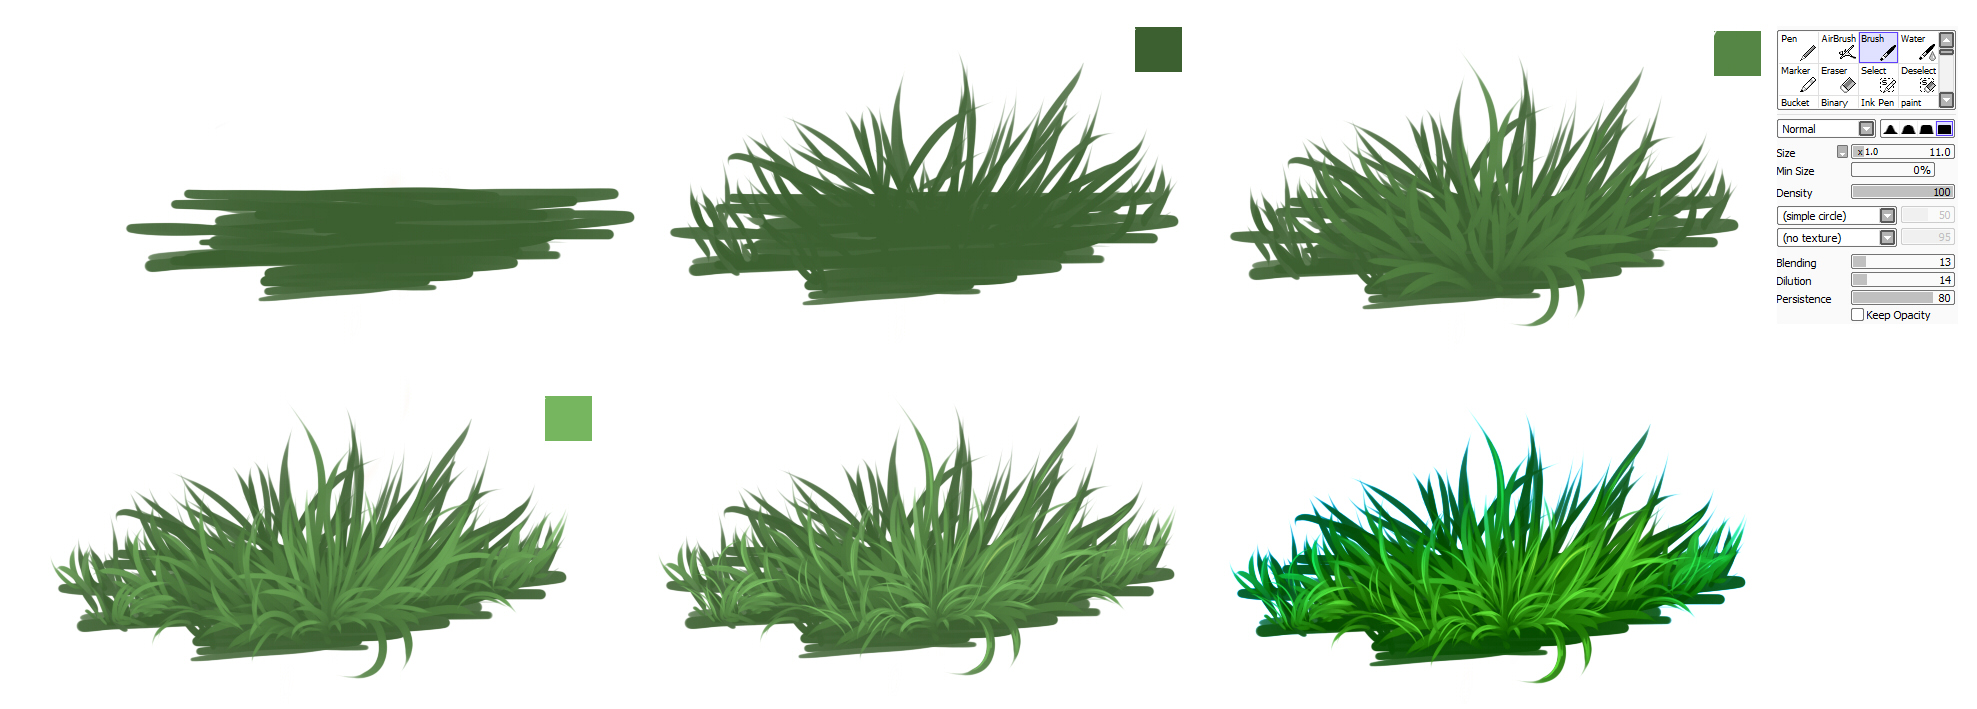 GRASS - easy tutorial by ryky on DeviantArt